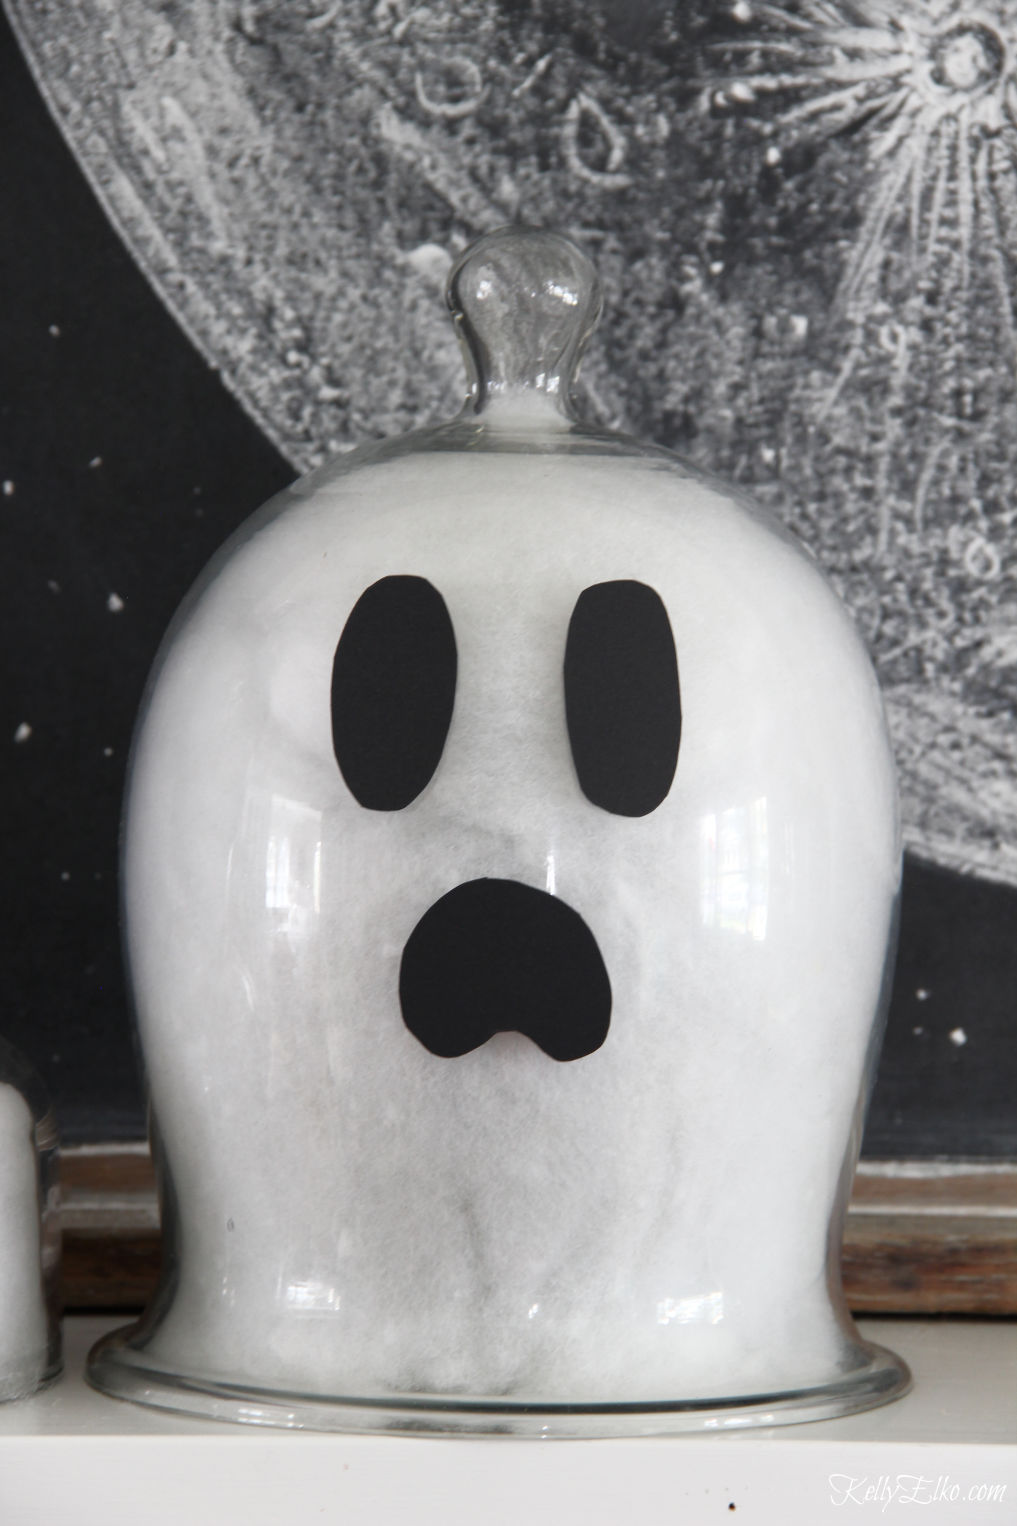 DIY Cloche Ghosts - what a fun Halloween craft kellyelko.com #halloween #halloweencrafts #halloweendecor #halloweendecorations #diyhalloween #diyhalloweendecorations #ghosts